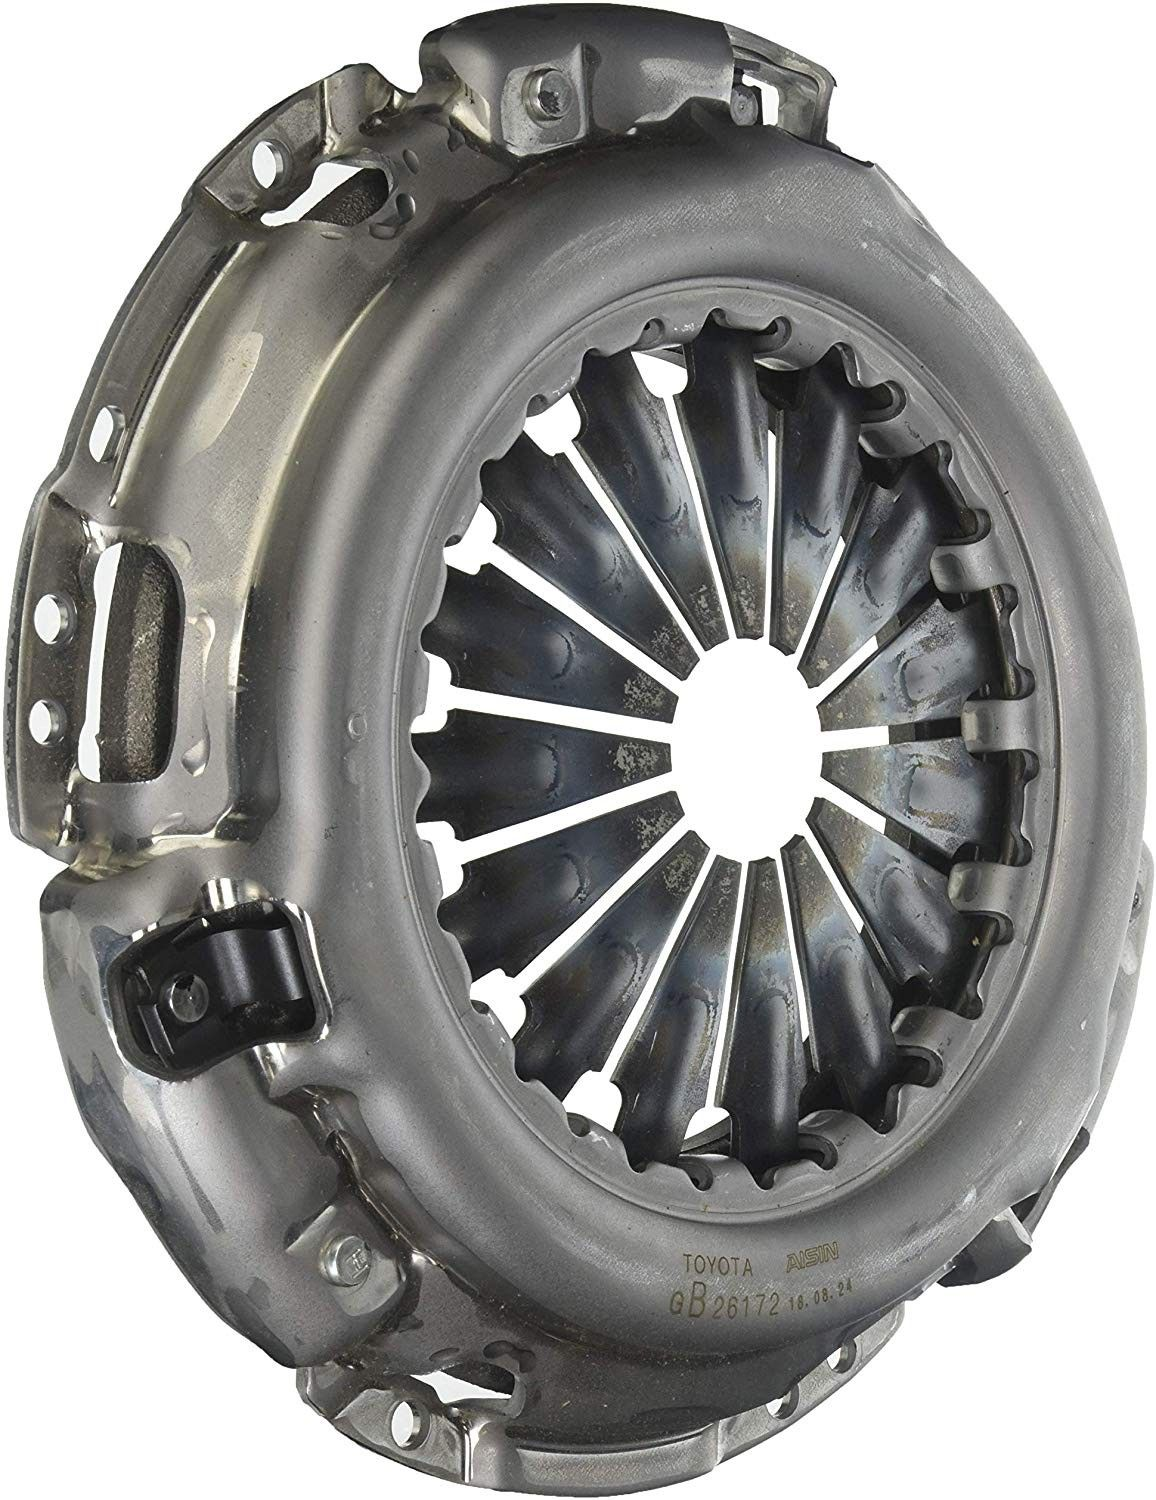 Luk Clutch Pressure Plate For Tractor Eicher 485 Small Lever 9mm 280 - 1280318100